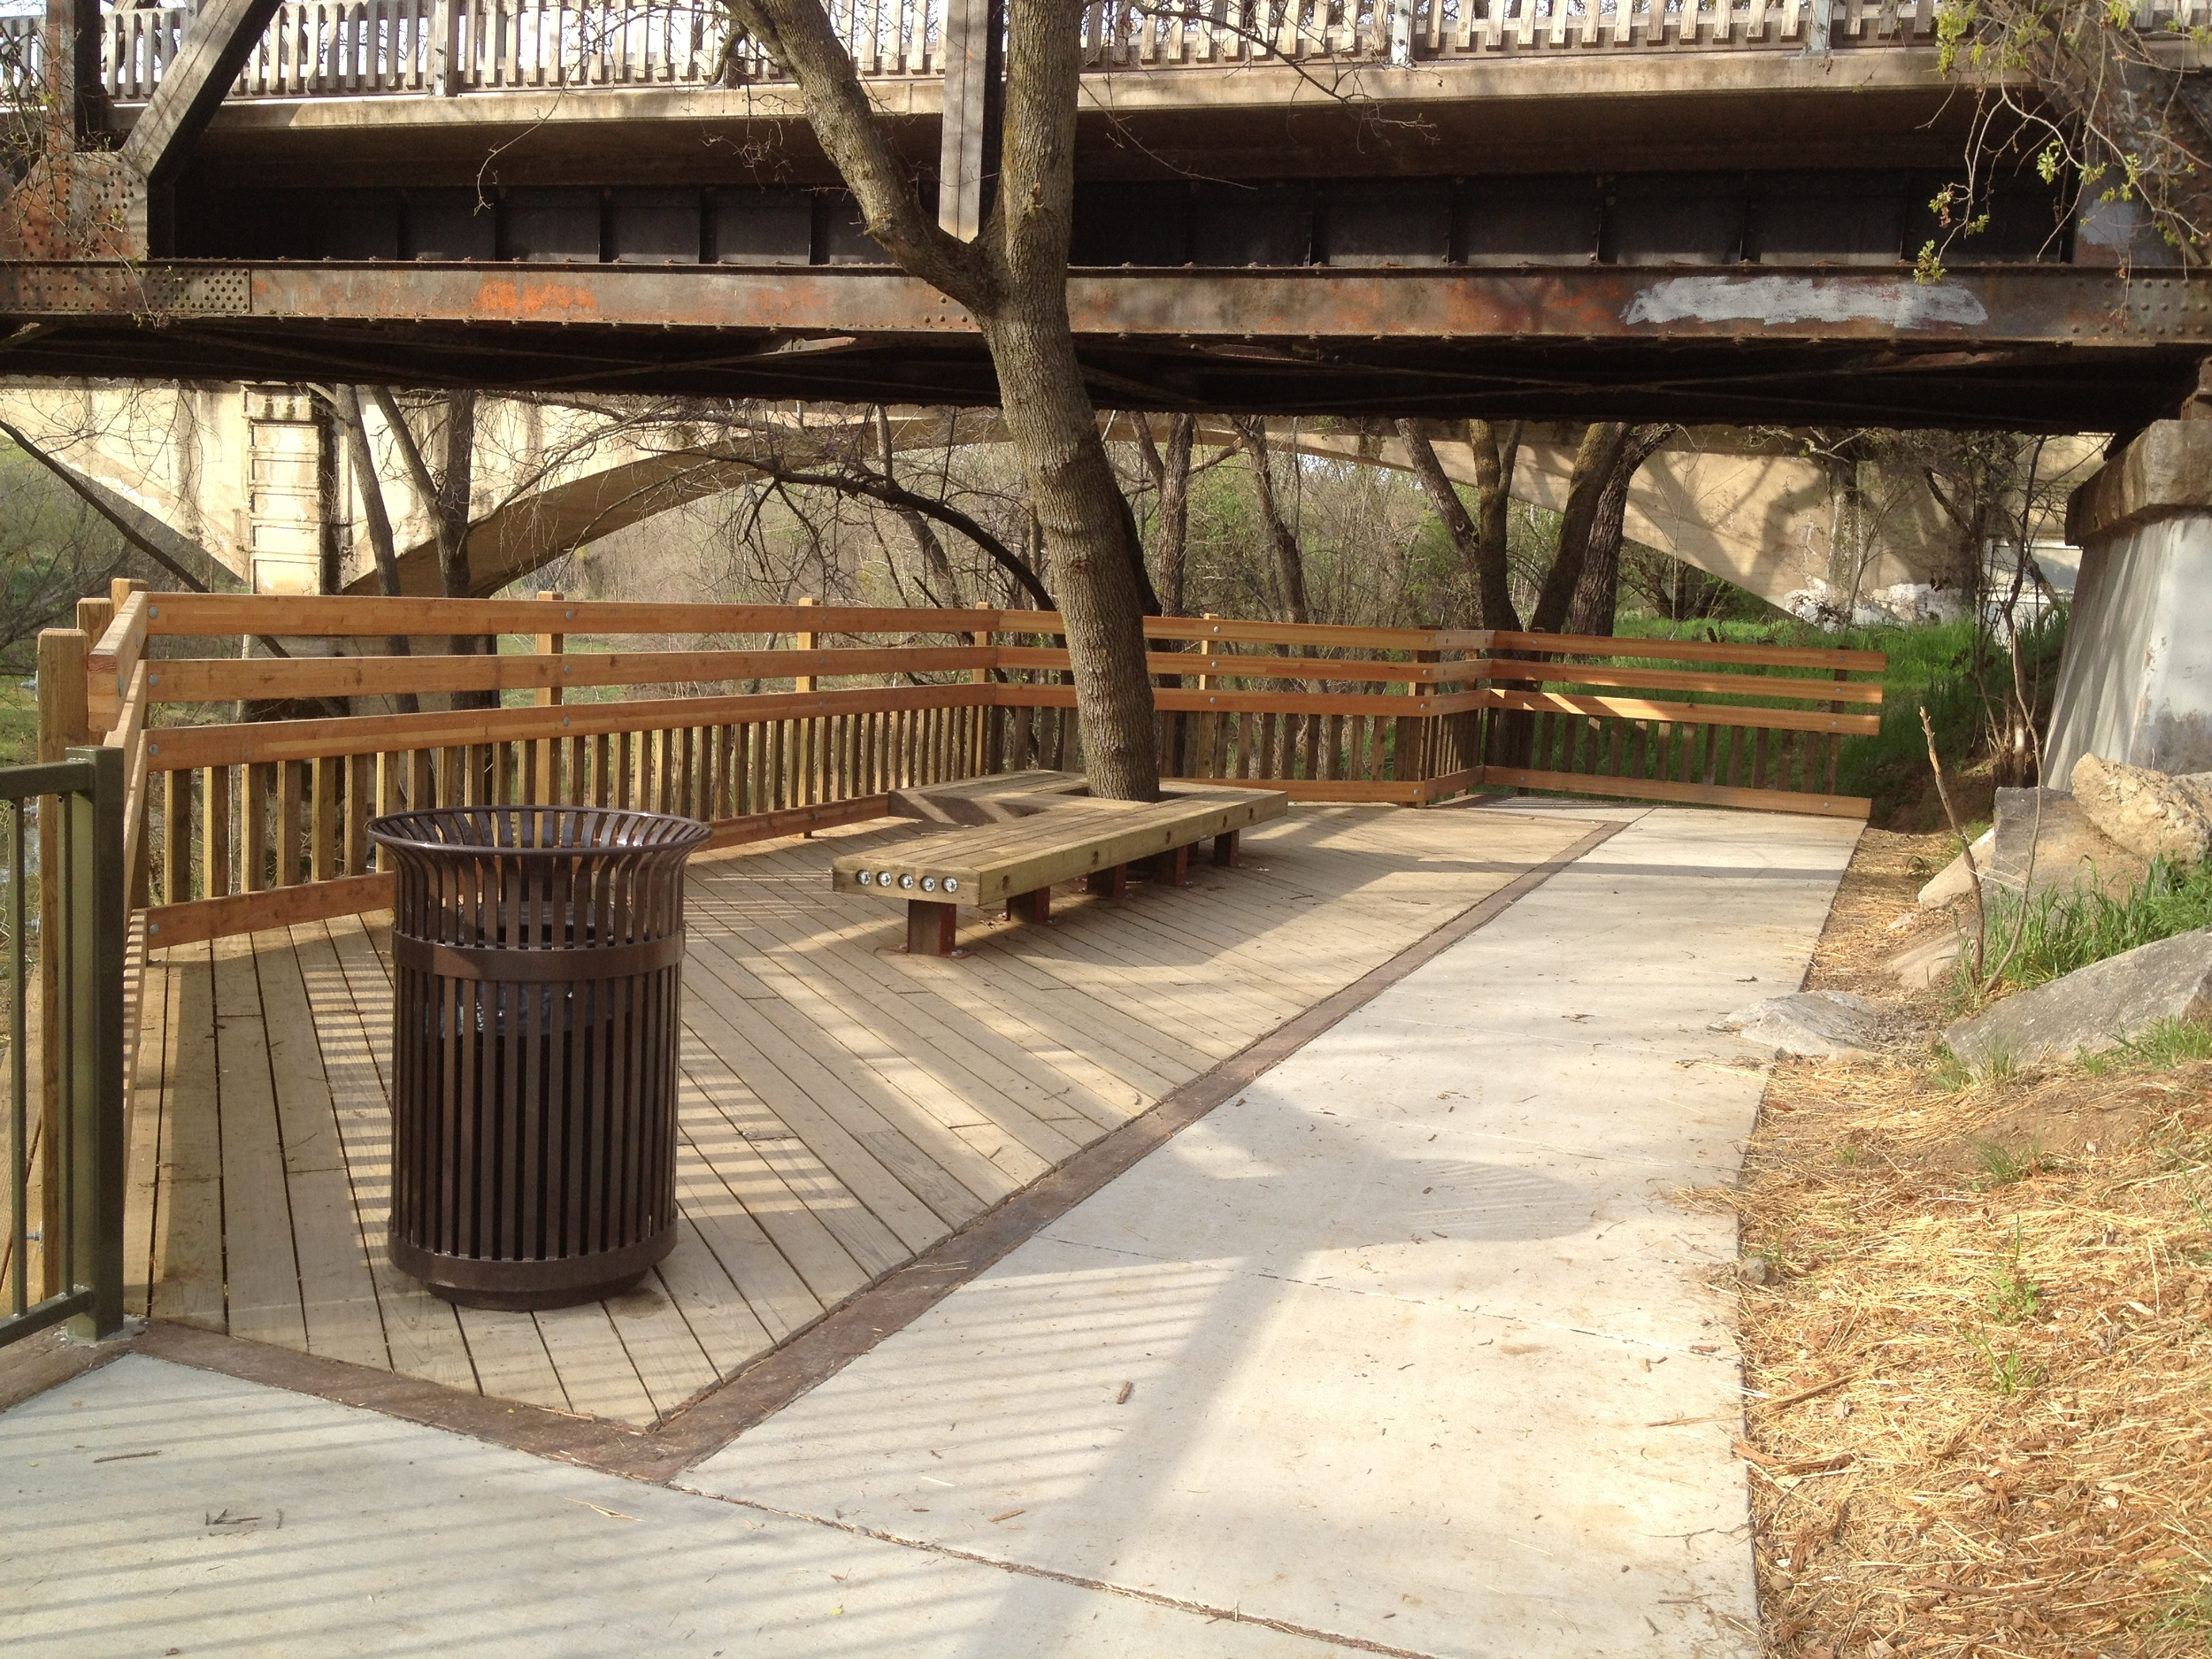 New overlook and benches below community center nestled partly under historic railcar pedestrian bridge